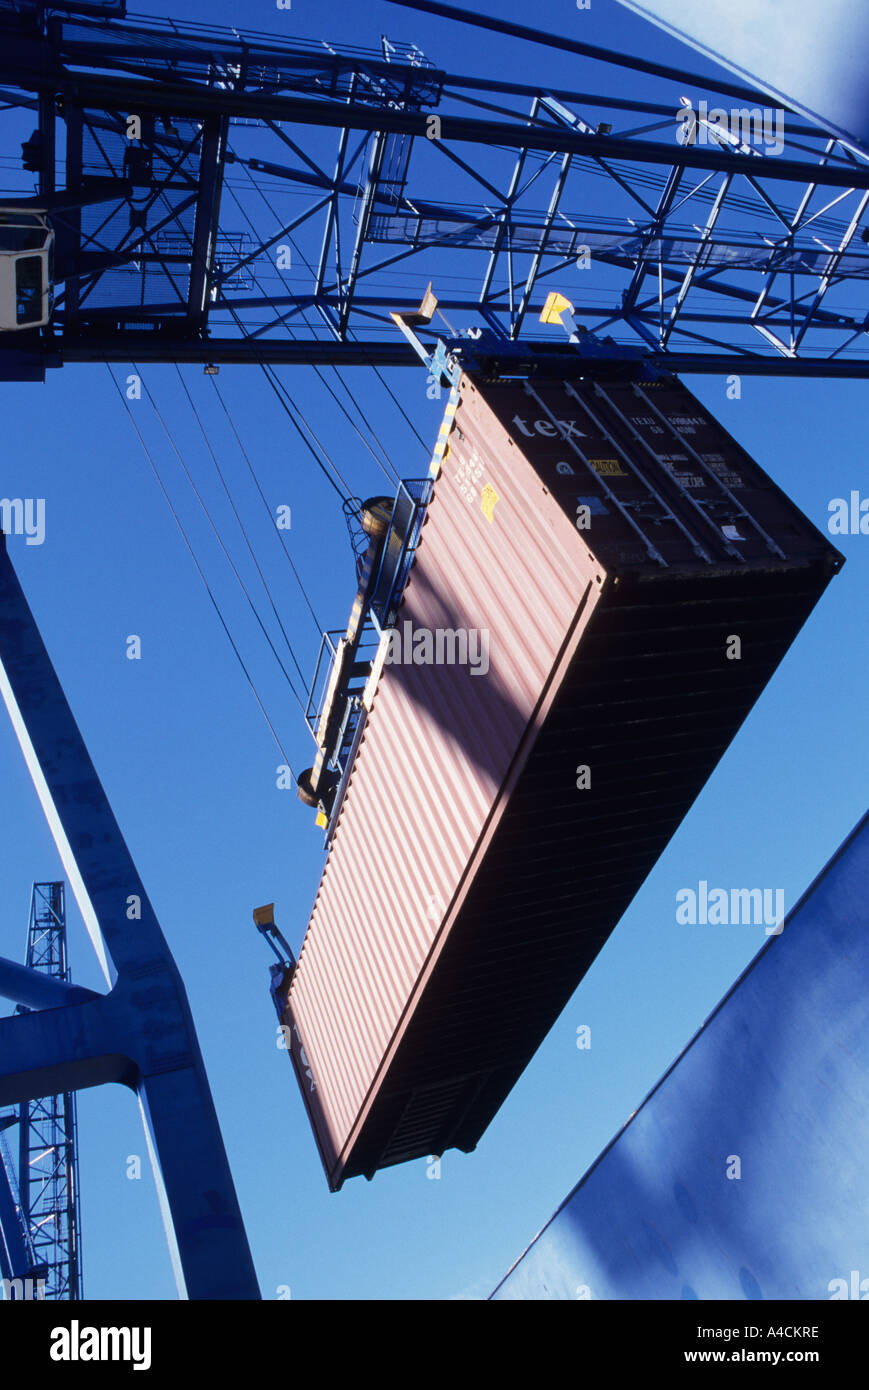 Loading container onto freighter - Stock Image